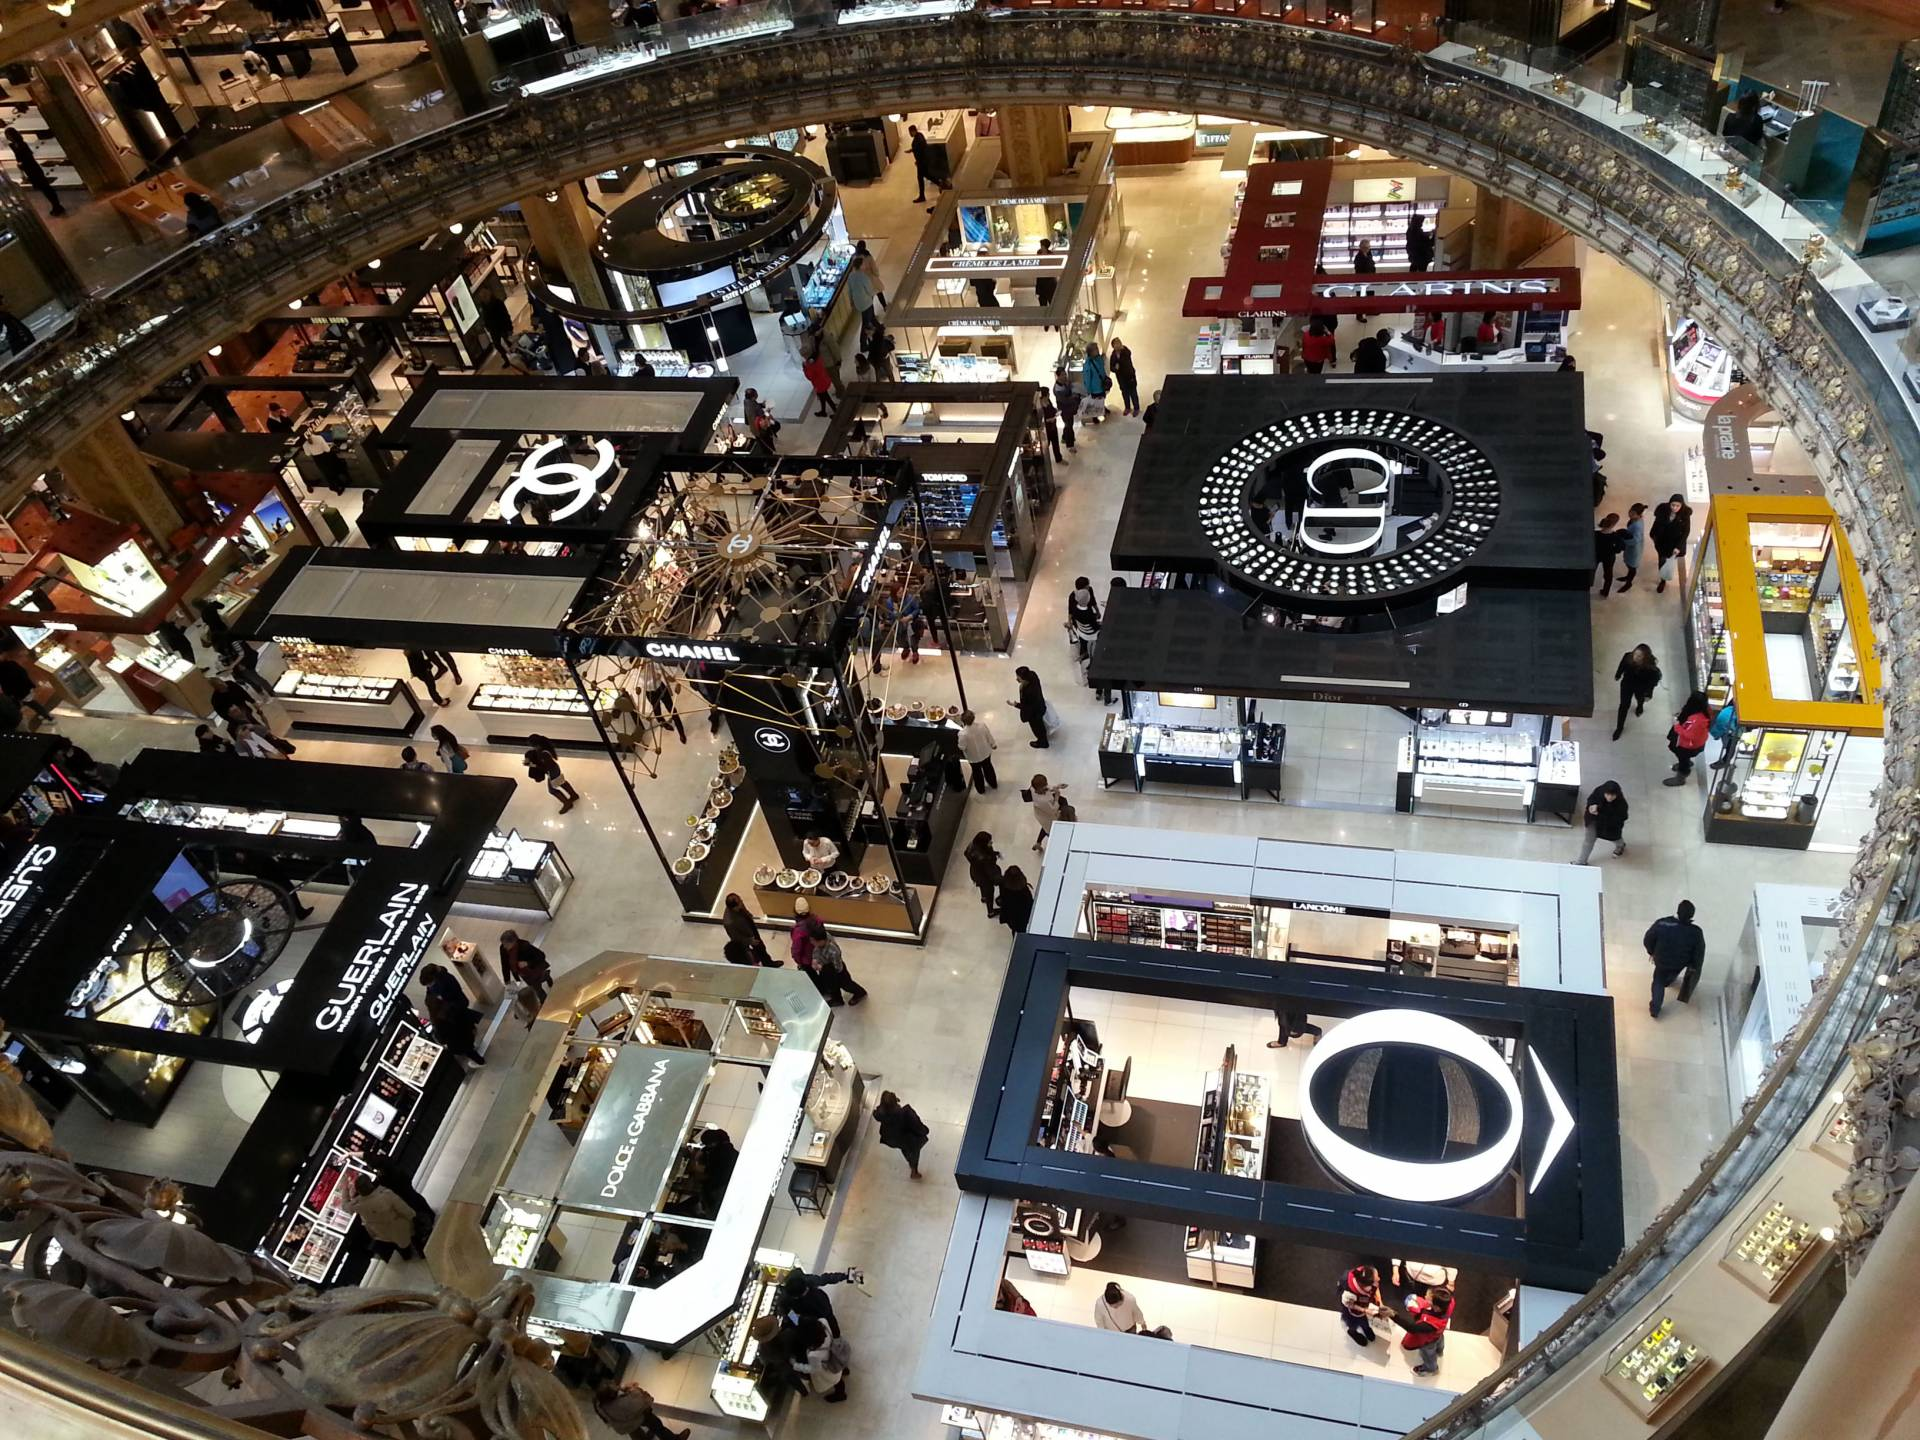 Paris Shopping Trip to Galeries Lafayette and Jardin du Luxembourg